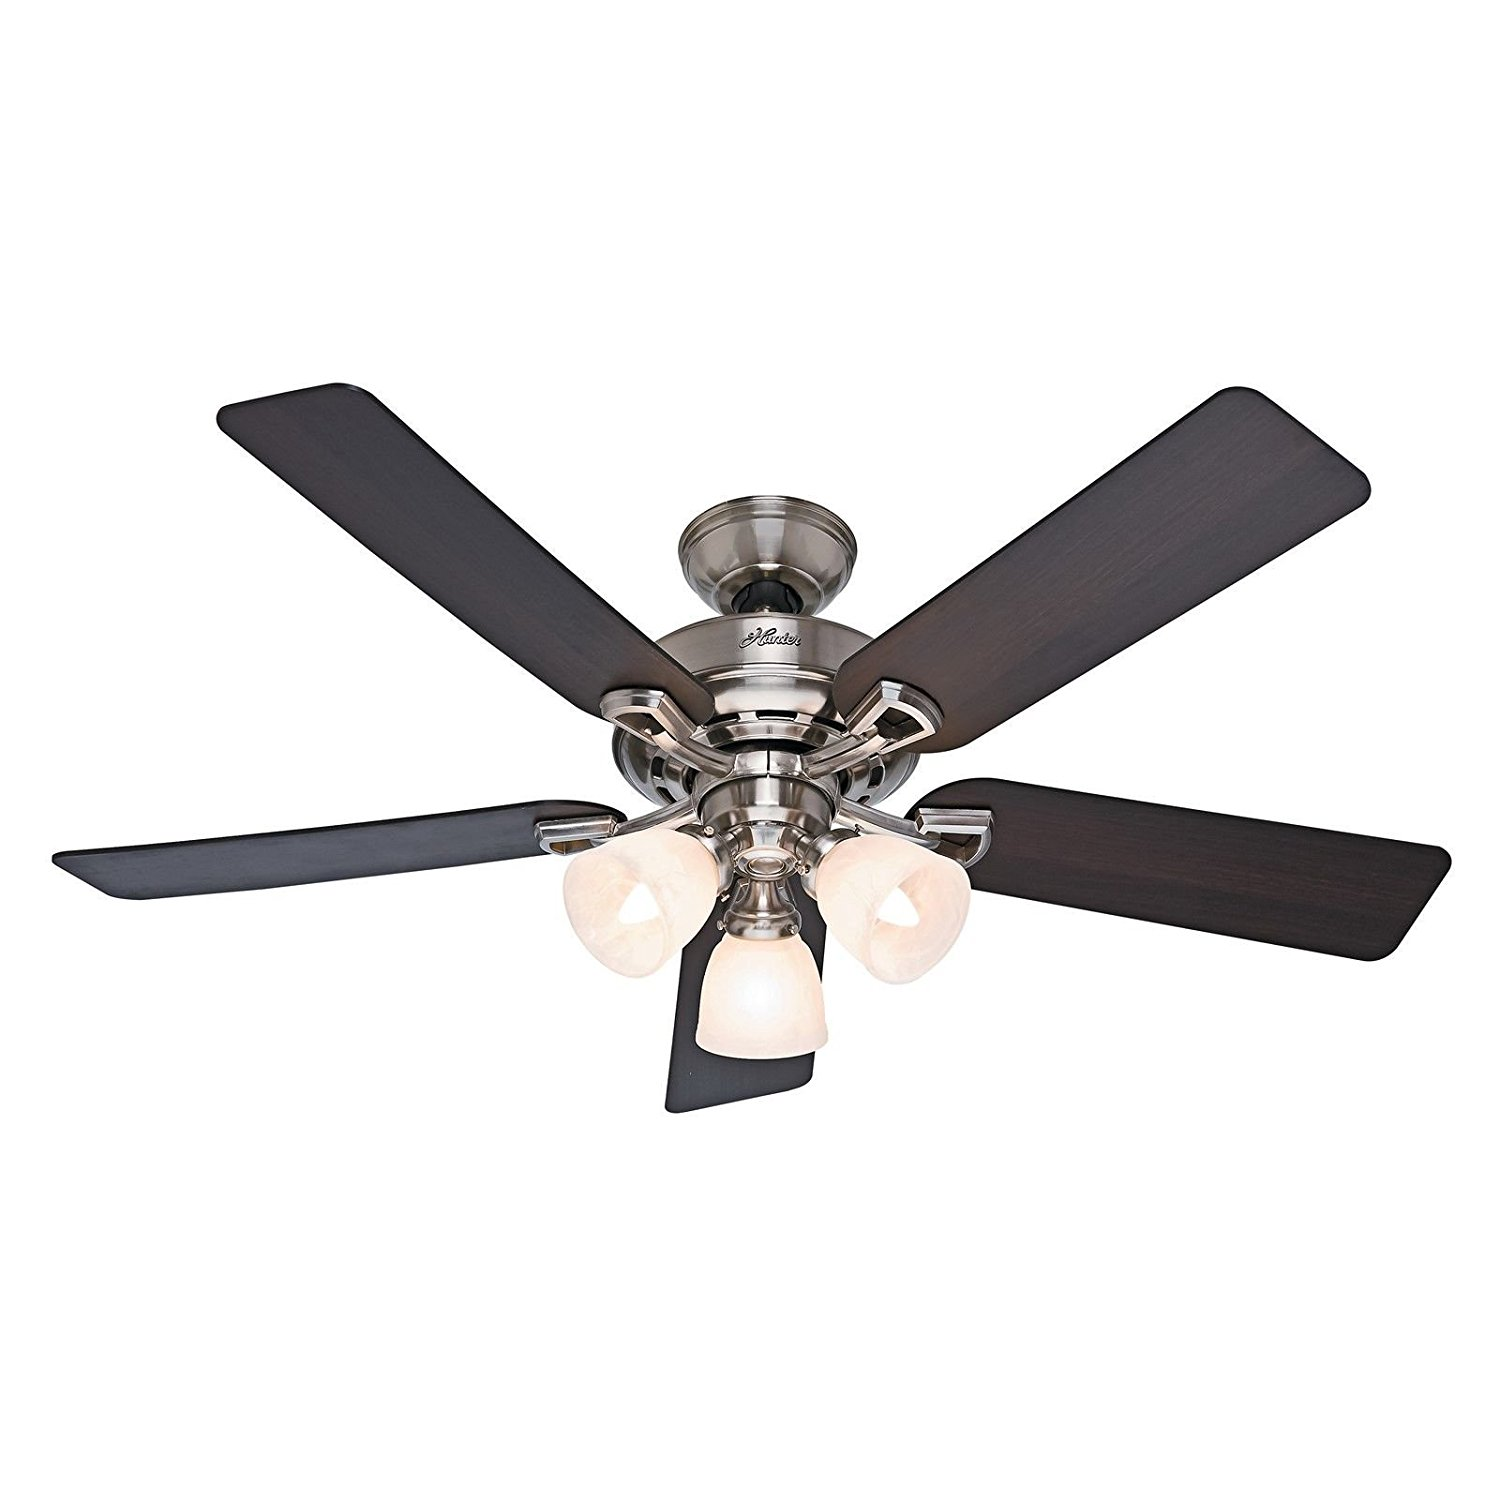 """Hunter Fan 52"""" Ceiling Fan, Brushed Nickel - Light Kit and Remote Control Included (Certified Refurbished)"""